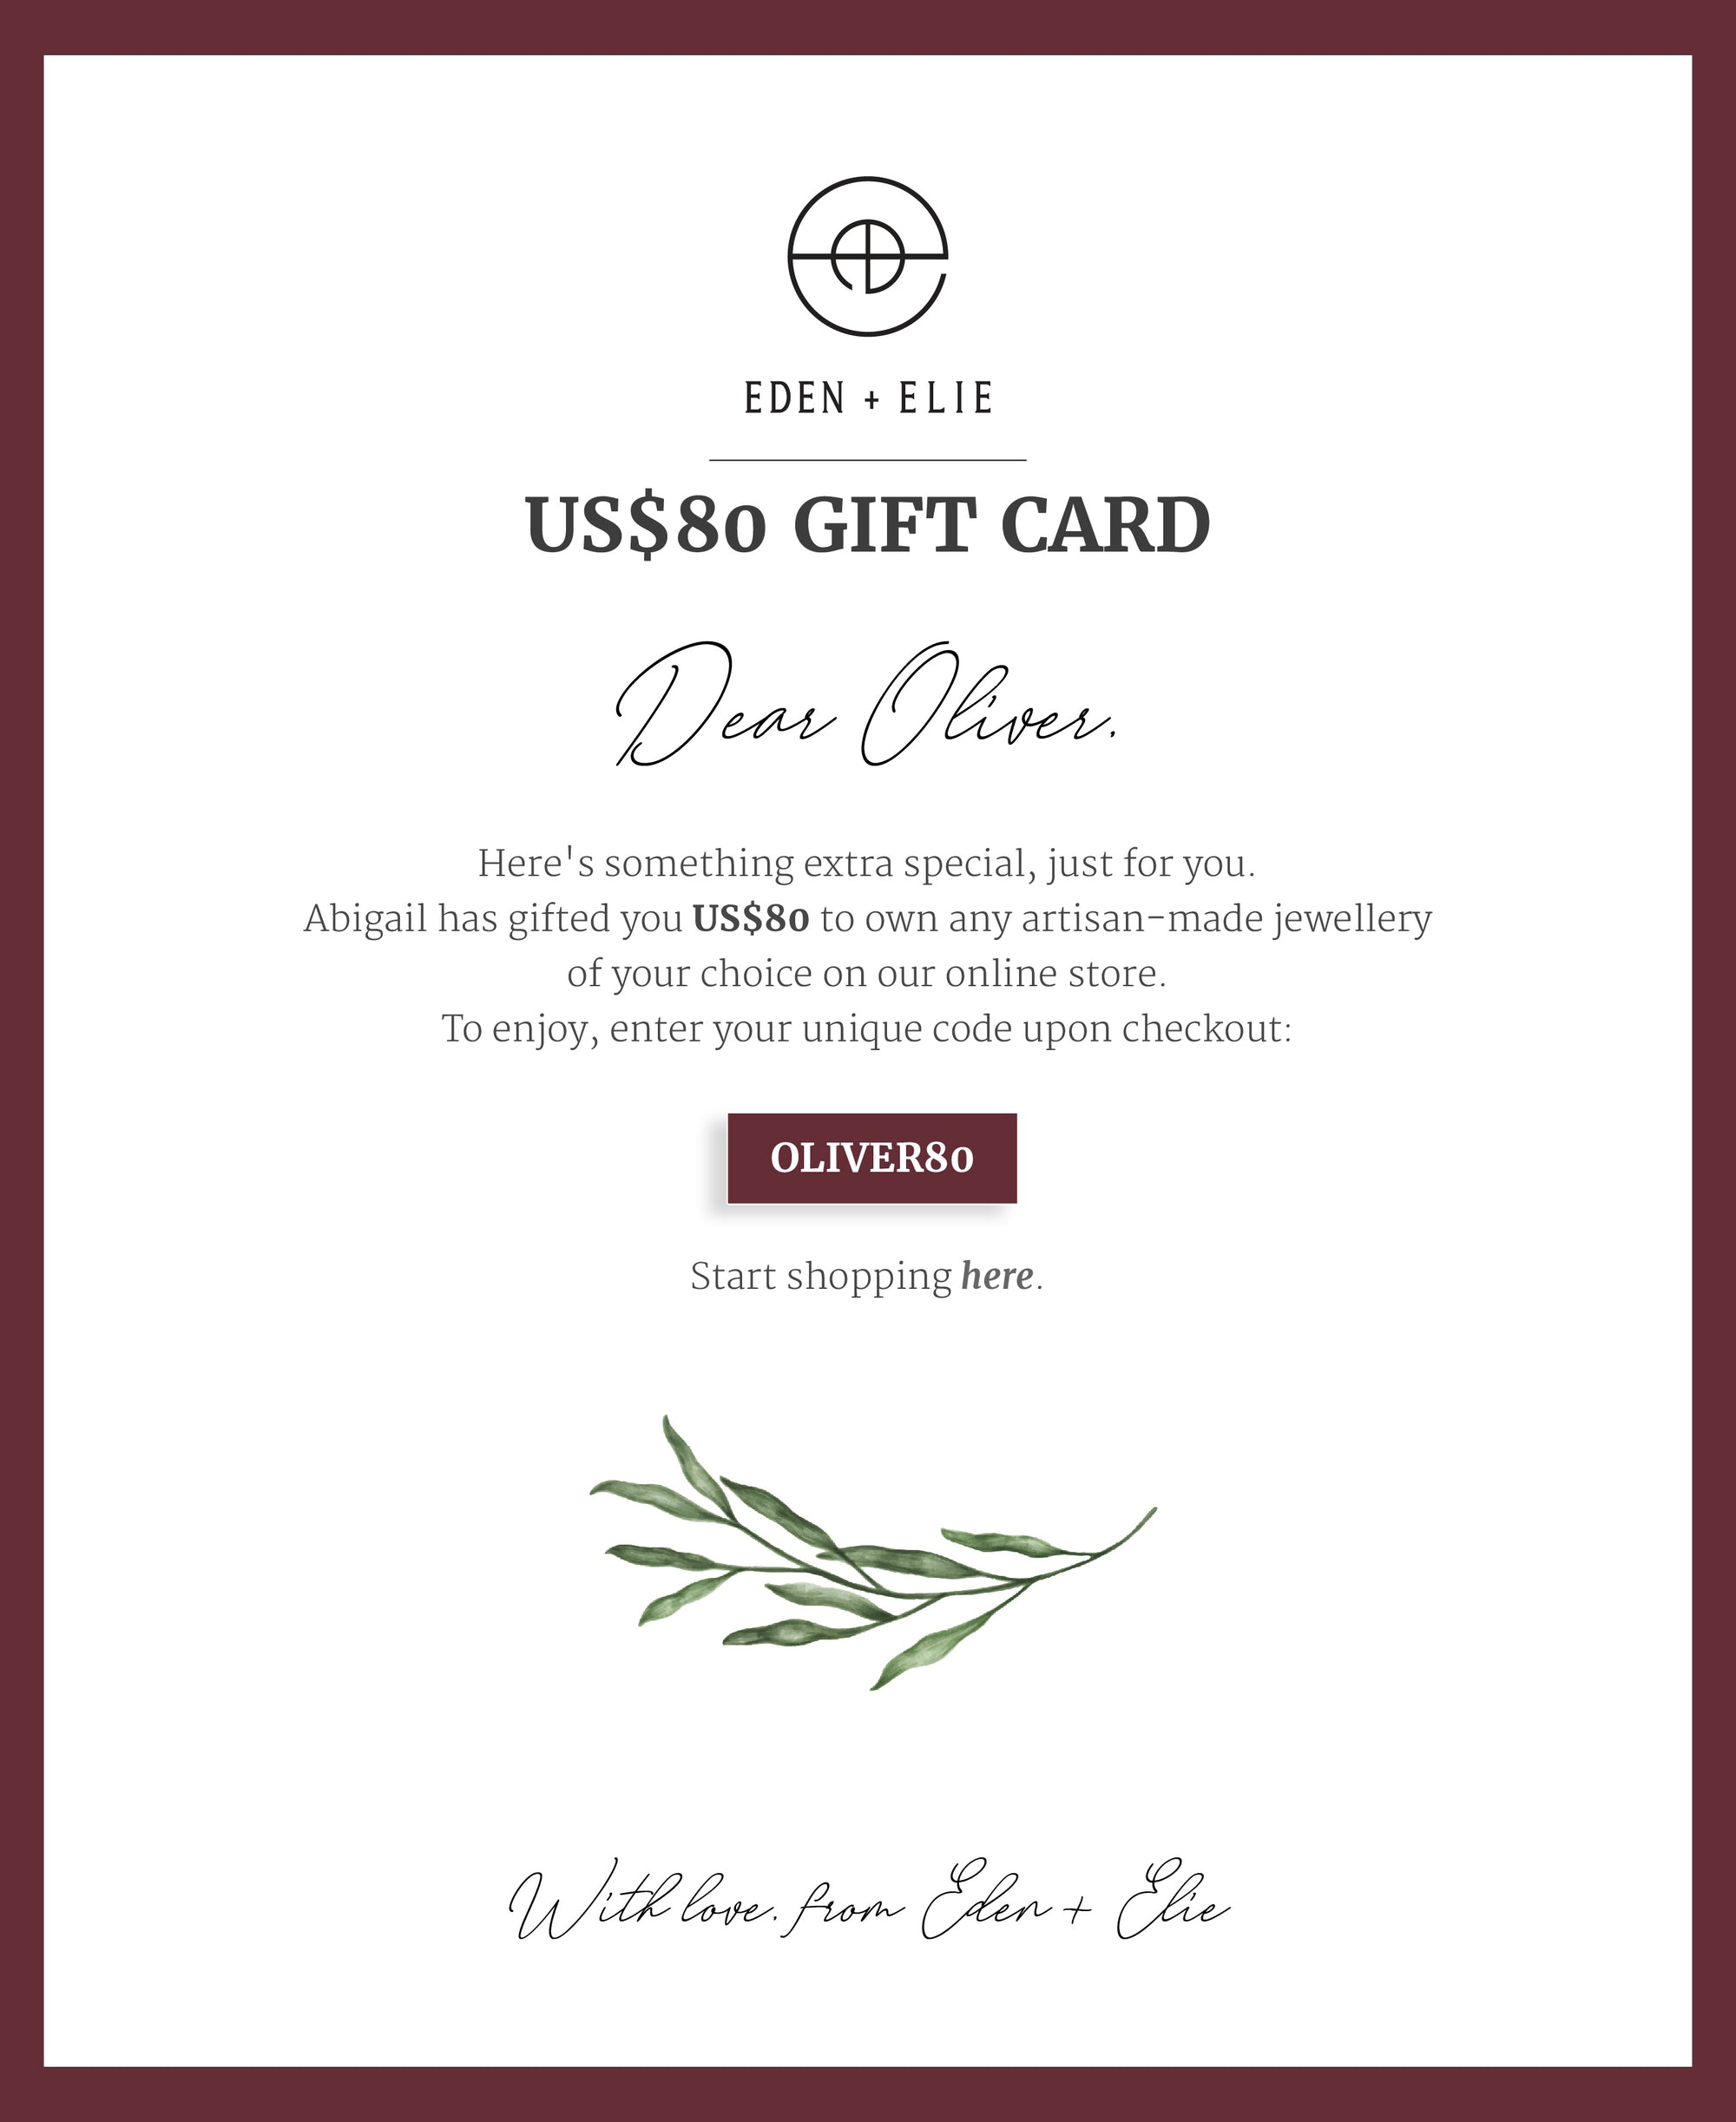 EDEN + ELIE Personalized E-Gift Card - $80